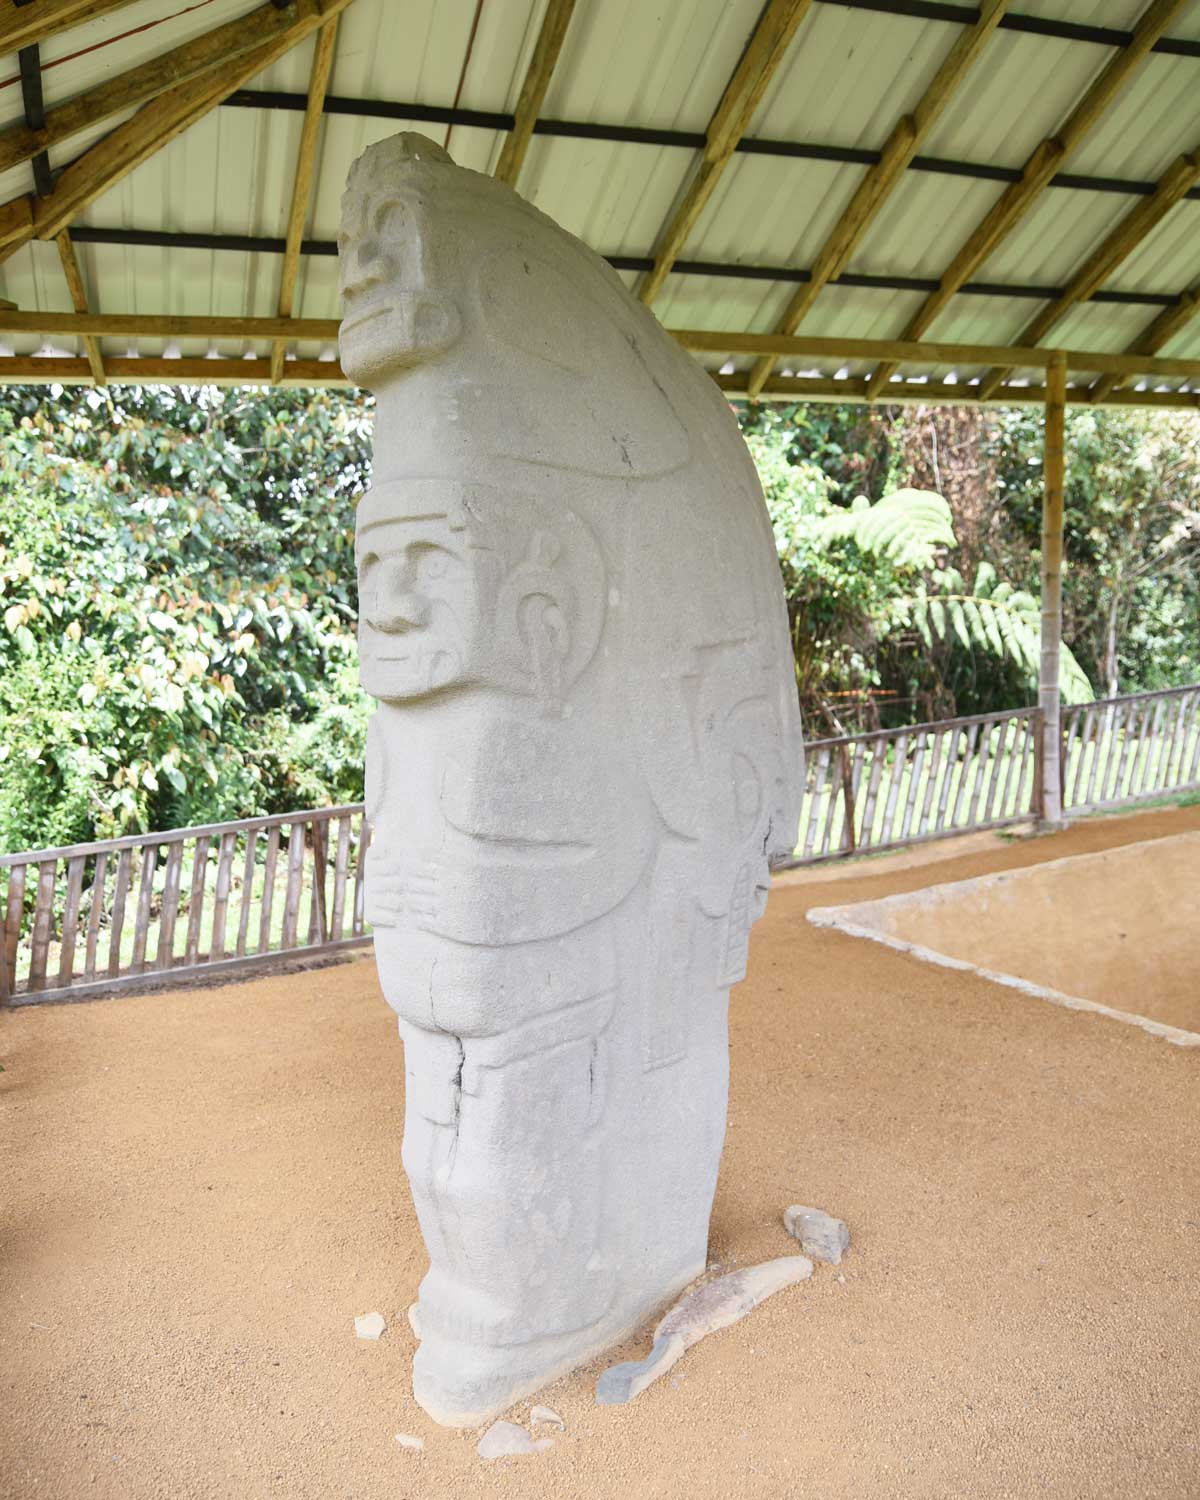 Interesting mix of animal and human characteristics on this statue; Alto de las Piedras, Isnos, Colombia | ©Angela Drake